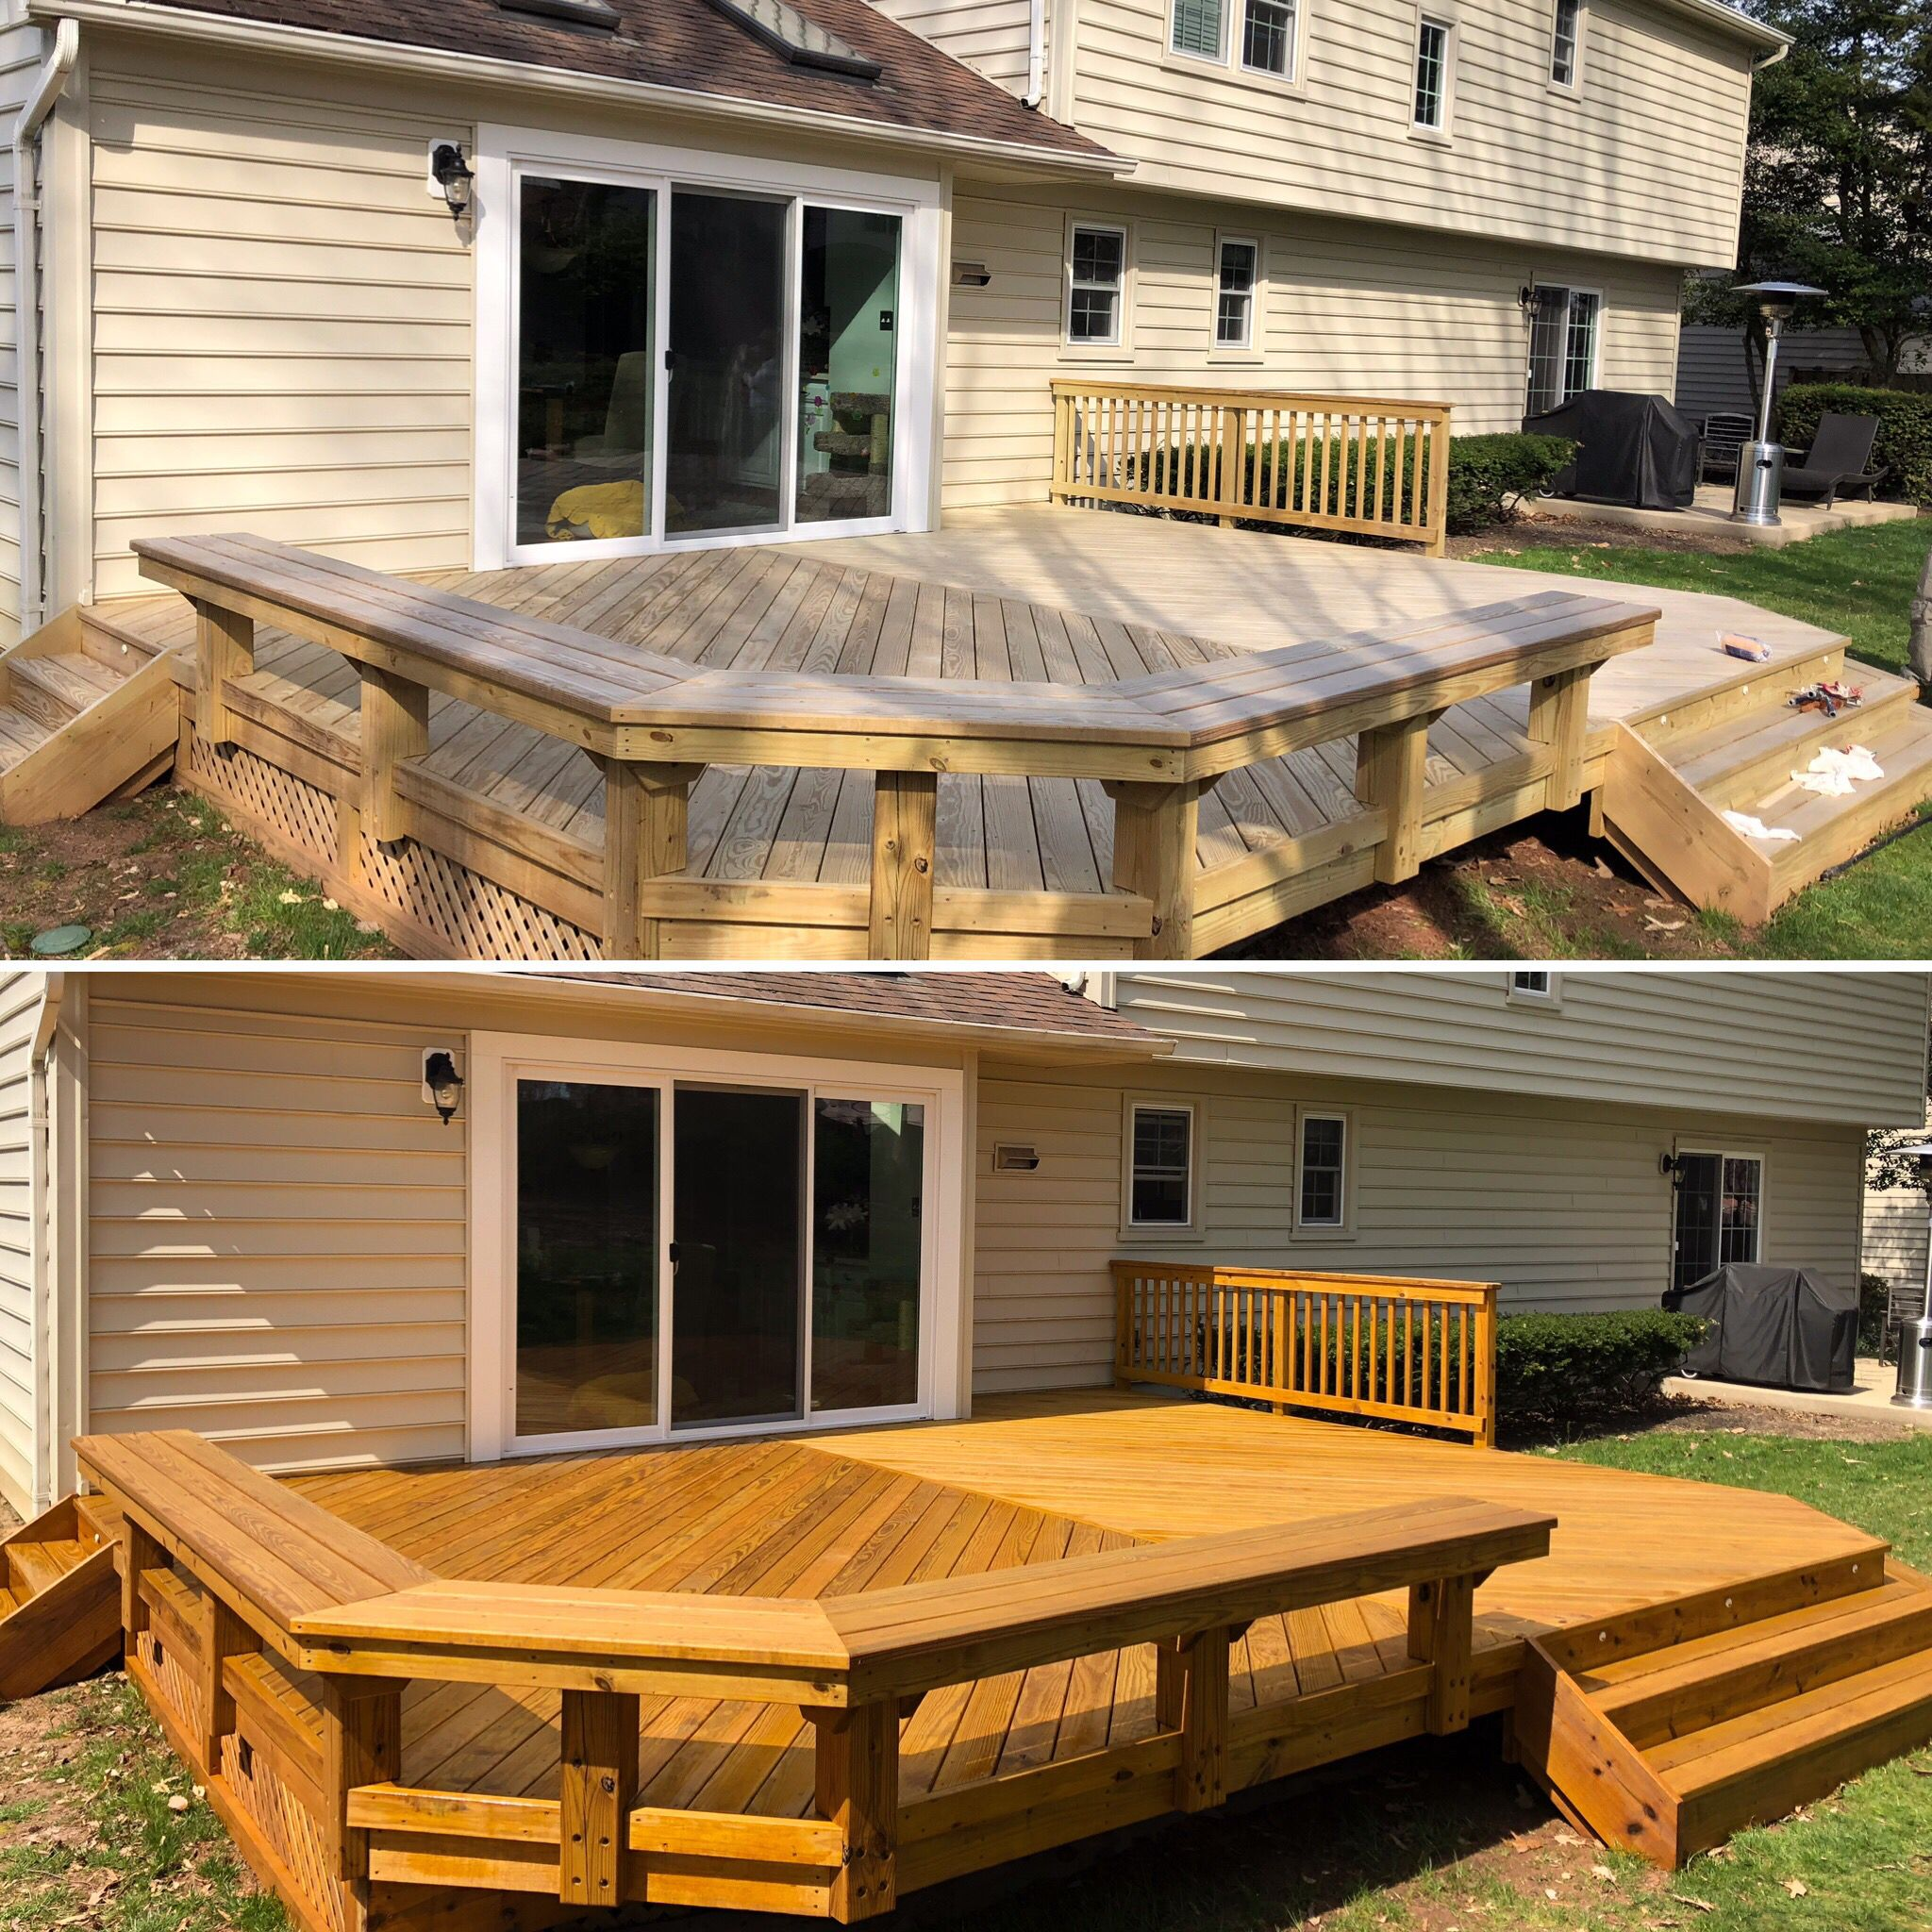 Staining Deck With A Translucent Stain Twp Honey Tone Staining Deck Deck Outdoor Decor